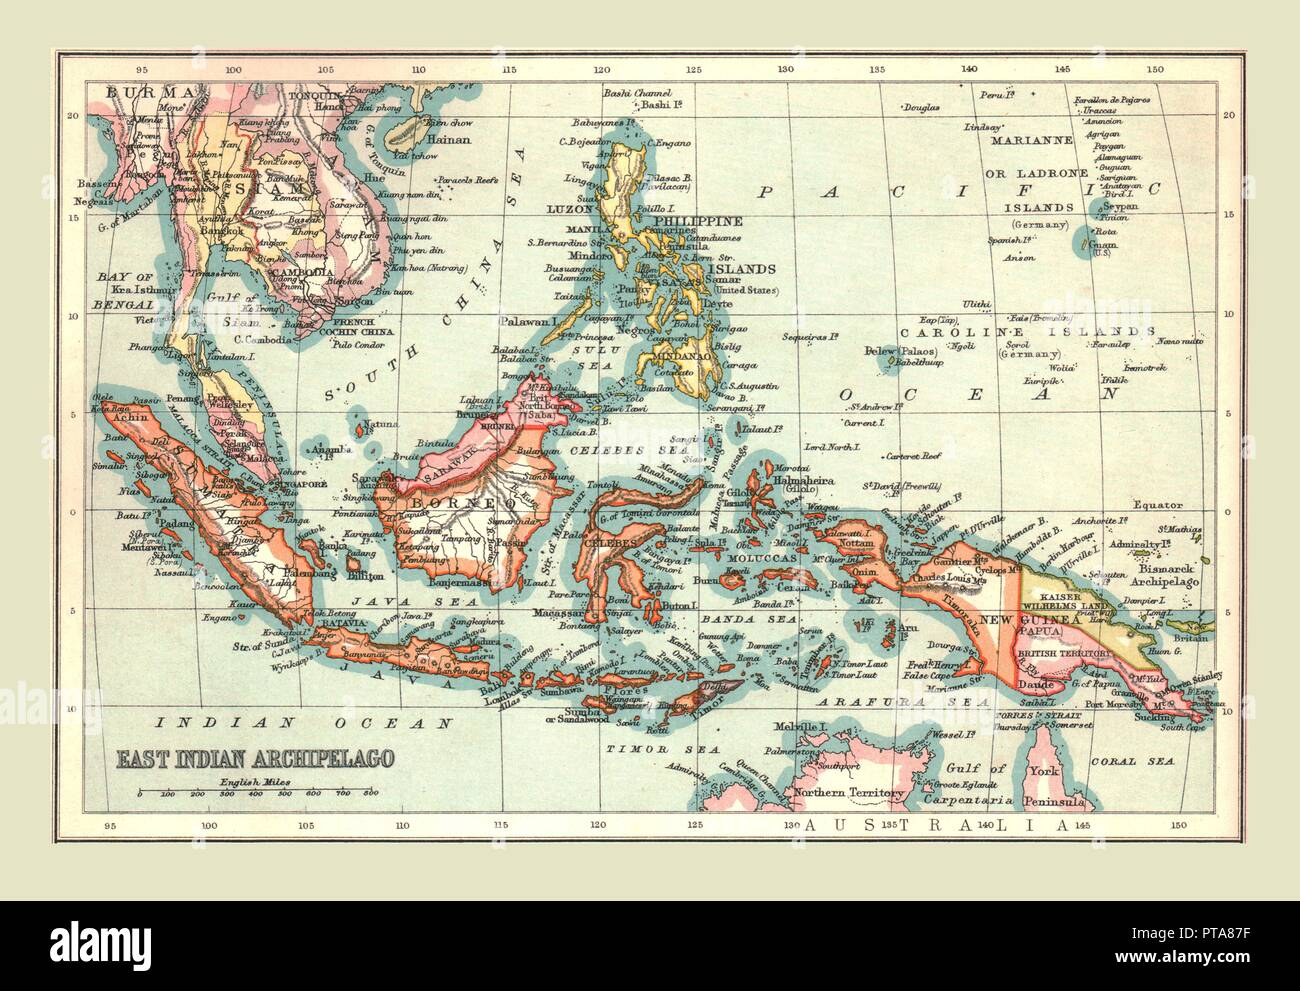 Map of the East Indian Archipelago, 1902. Showing Java, Sumatra, Borneo, Siam, The Philippines, Papua New Guinea and the South China Sea. From The Century Atlas of the World. [John Walker & Co, Ltd., London, 1902] - Stock Image